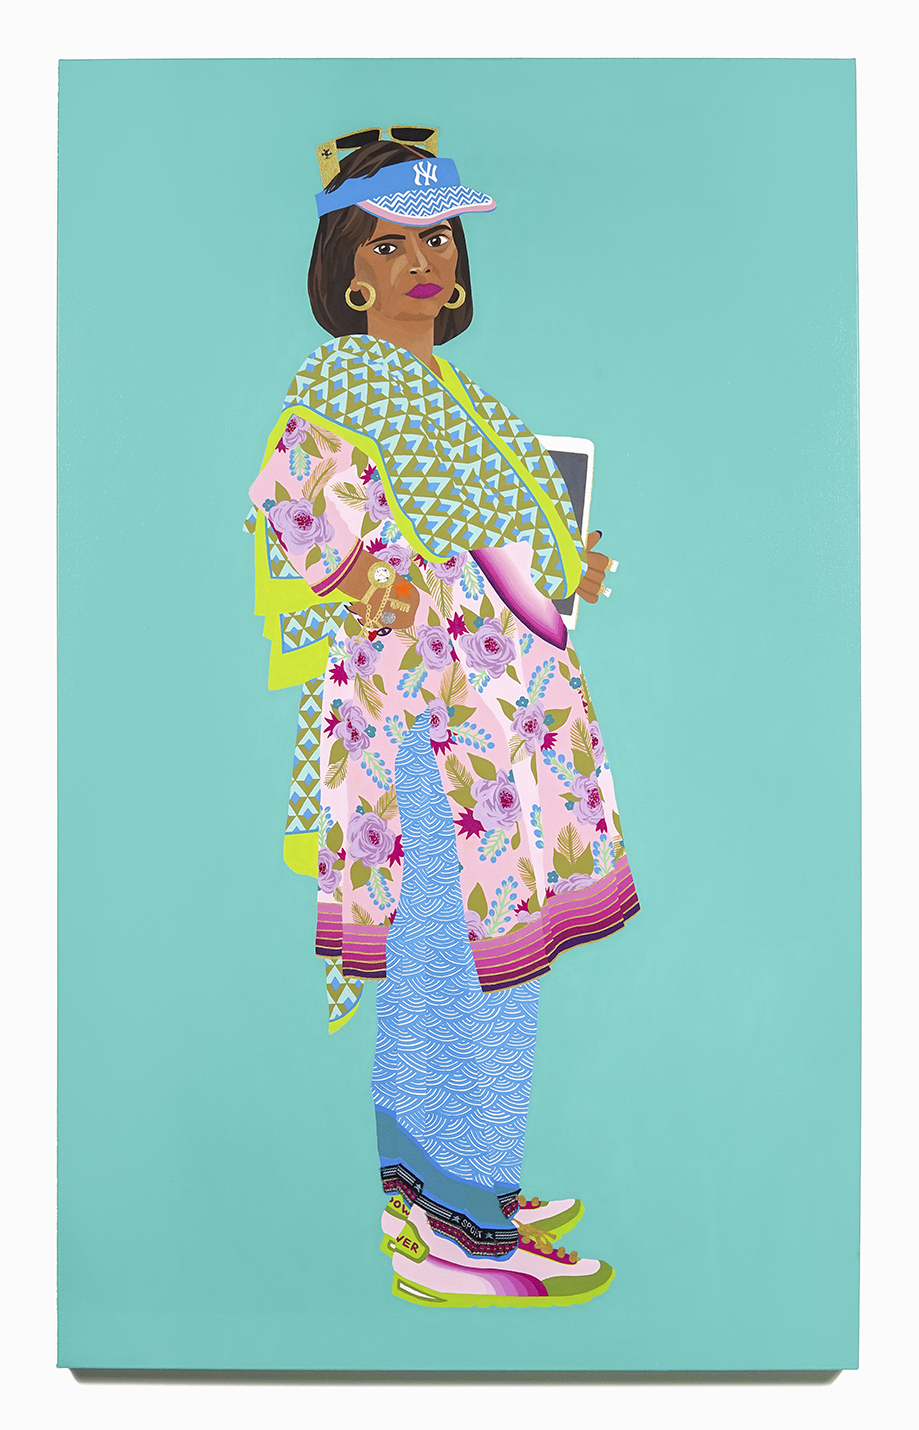 2016. Pinky Aunty (Upping the Aunty series) Acrylic, fabric and crystal on canvas 36 in. x 60 in. Pinky Aunty kicks ass with powder pink Bata Power sneakers paired with Hiroshige-inspired Japanese sport-styled patiala salwar. She tops this with a rose garden floral kameez and contemporary-chic diamond-patterned chuni. Large rocks on her fingers, branded Versace-look sunglasses perched above her NY Yankees visor round off her urban flair. Sold